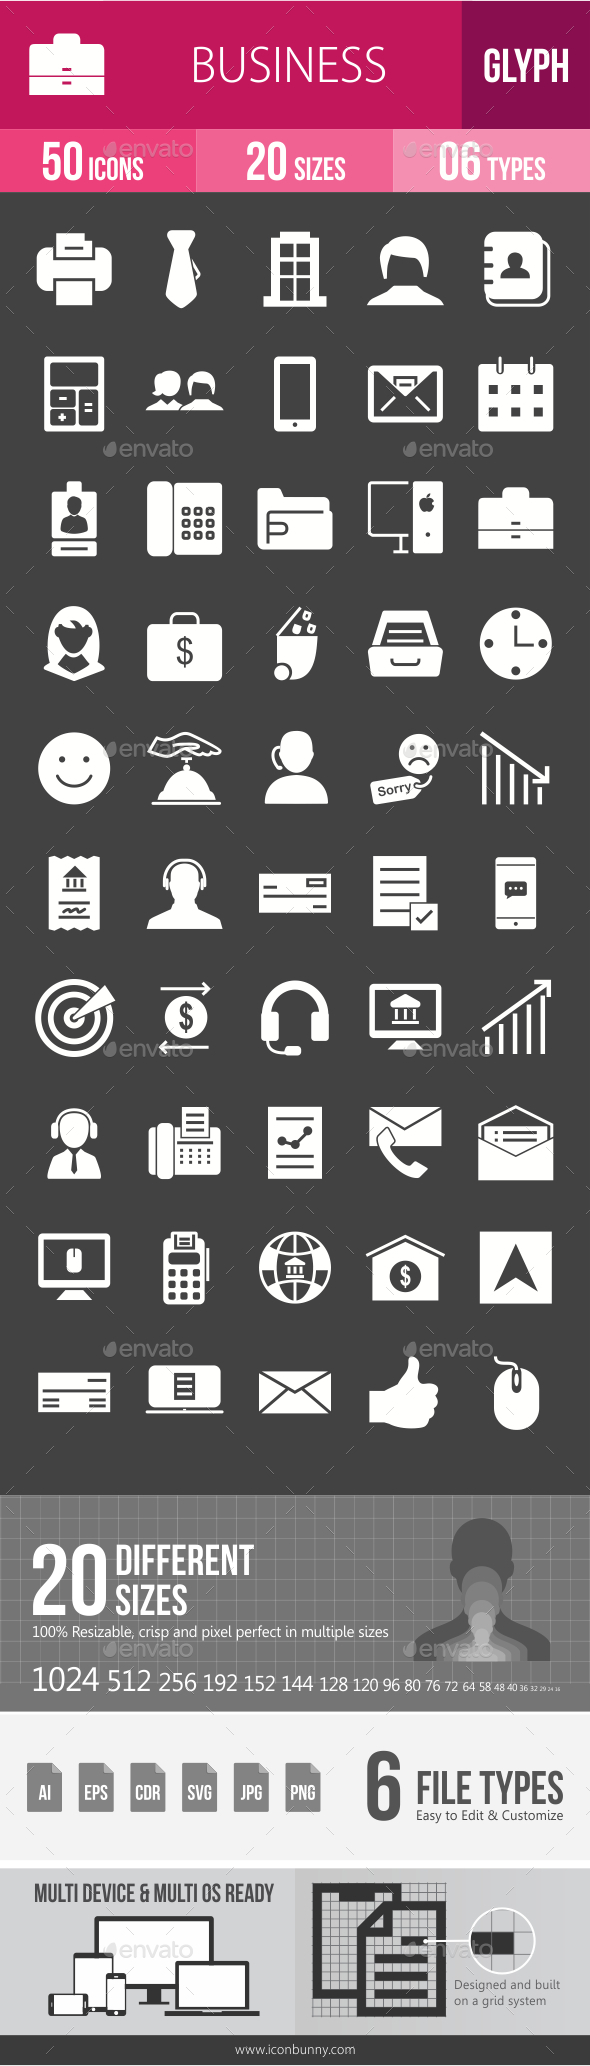 Business Glyph Inverted Icons - Icons